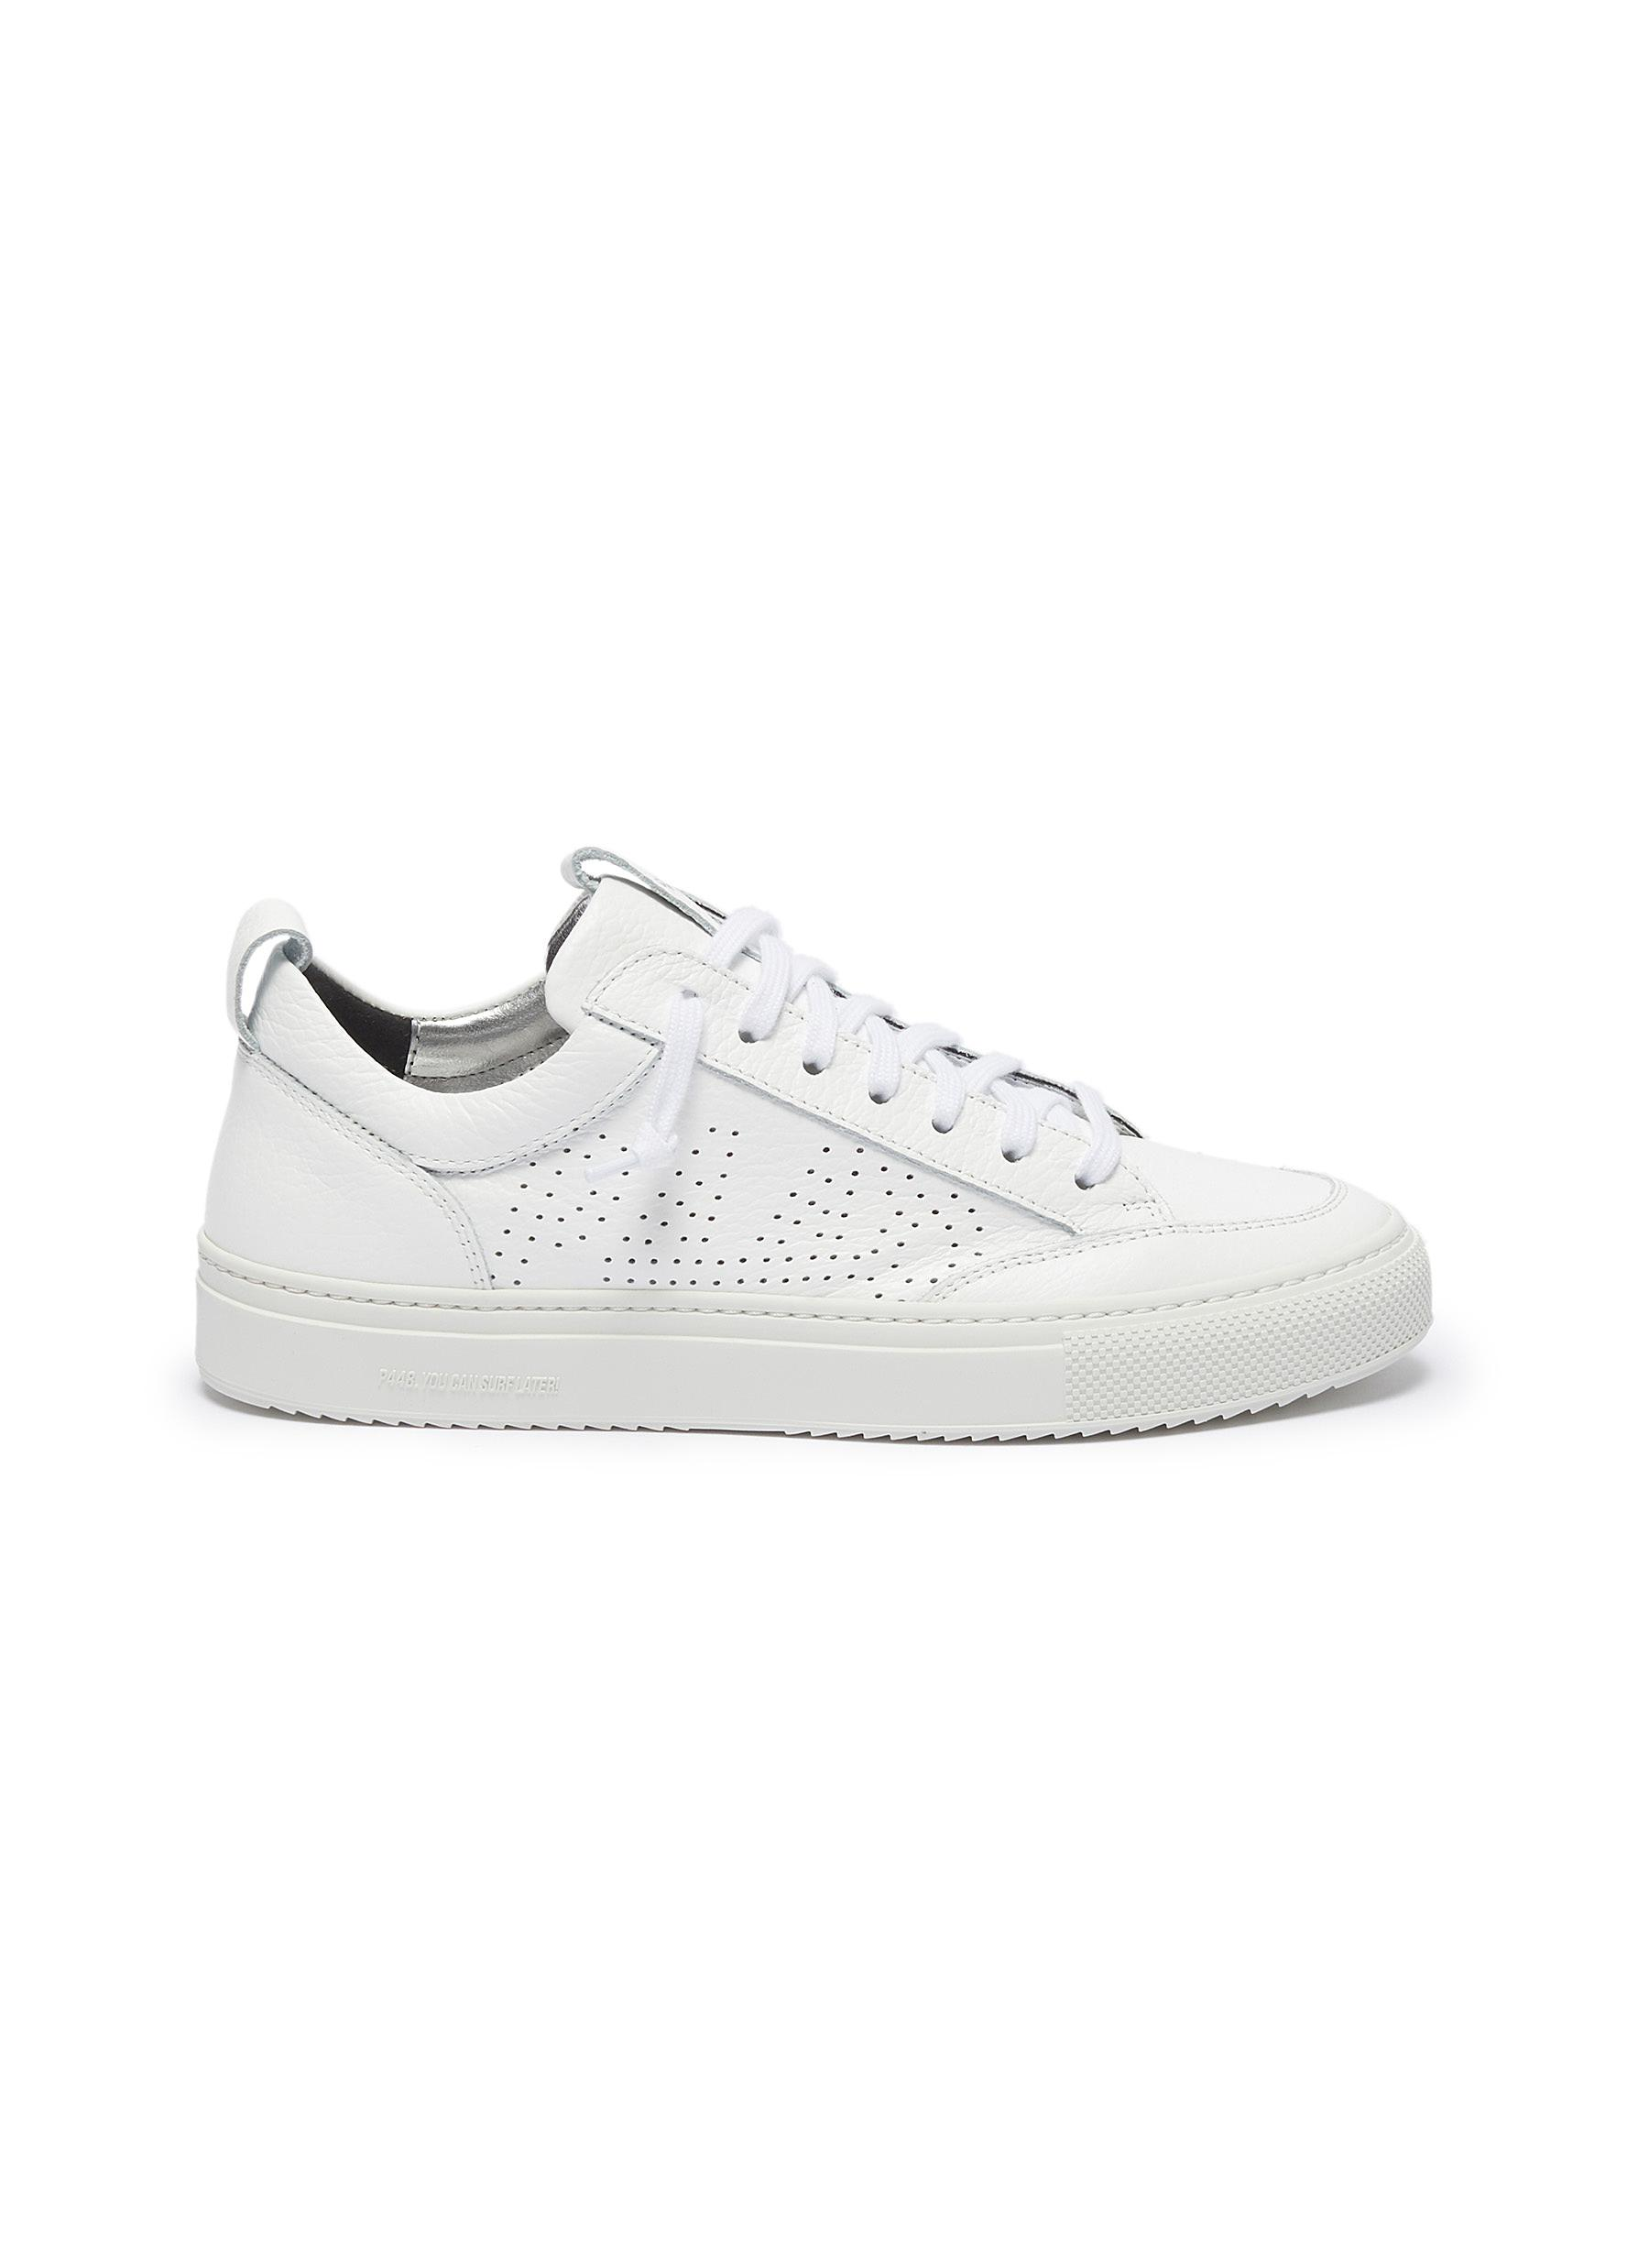 P448 Sneakers Soho leather sneakers